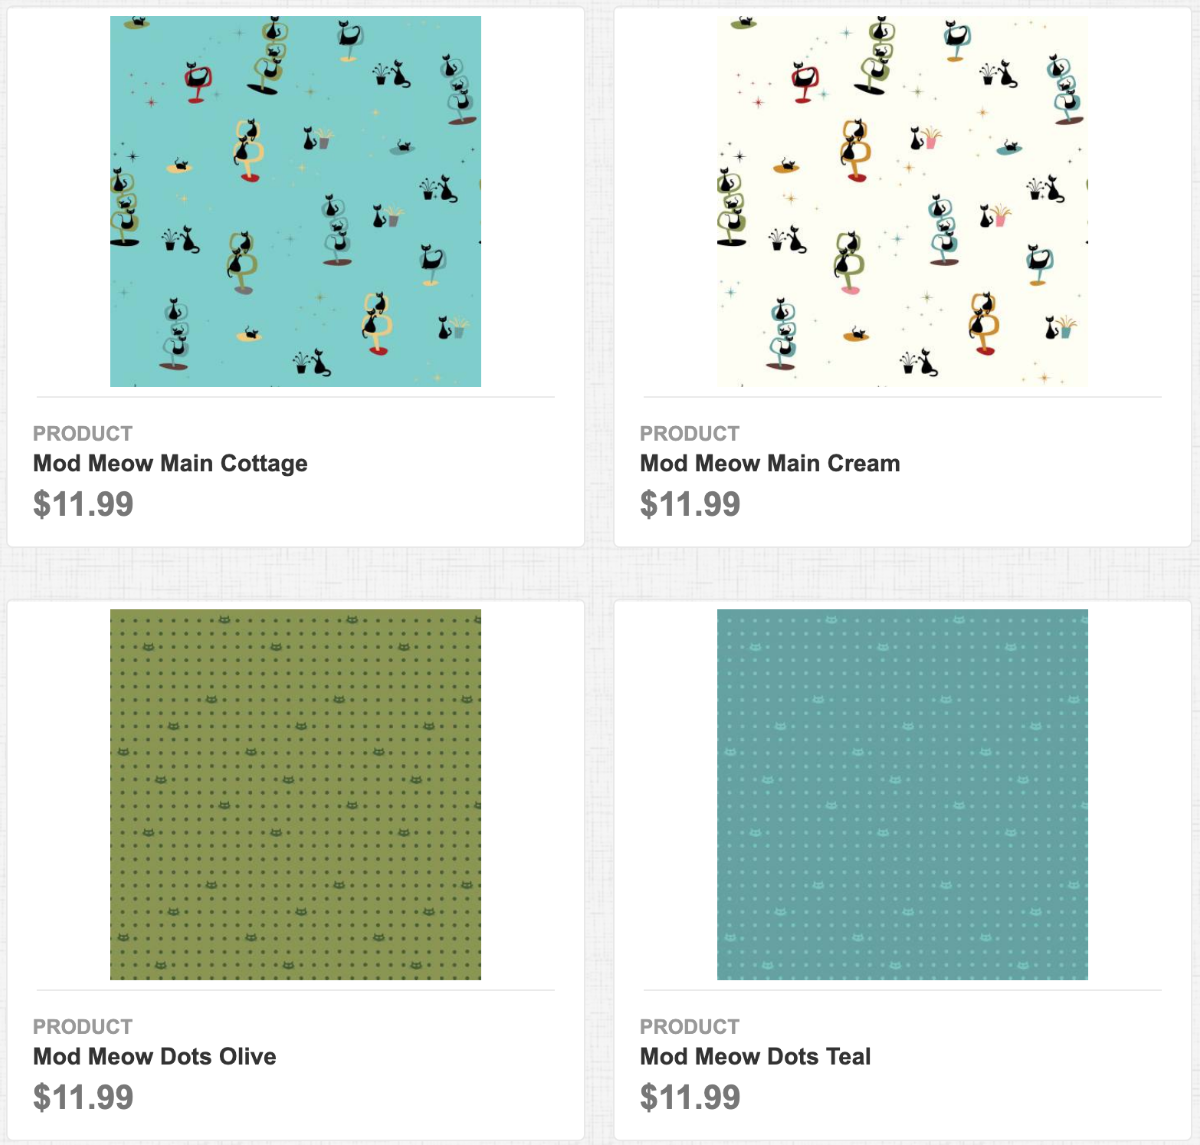 Mod Meow Main Cottage, Main Cream, Dots Olive, Dots Teal